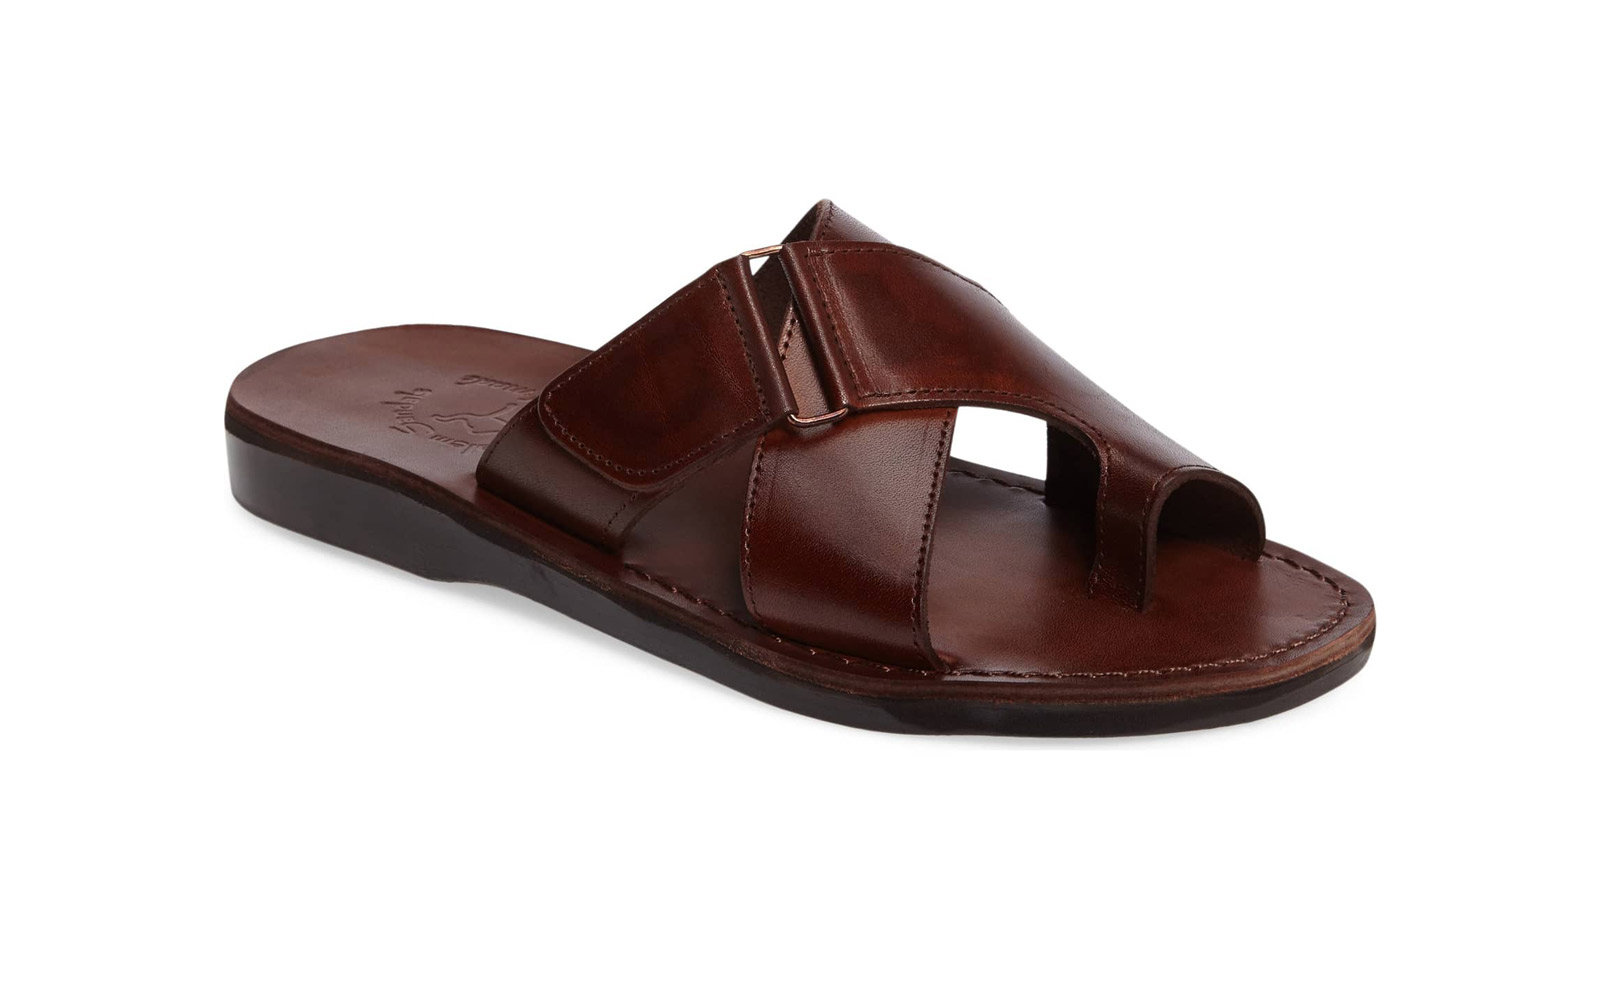 2455ca6c768c The Best Men s Sandals to Pack for Your Next Vacation